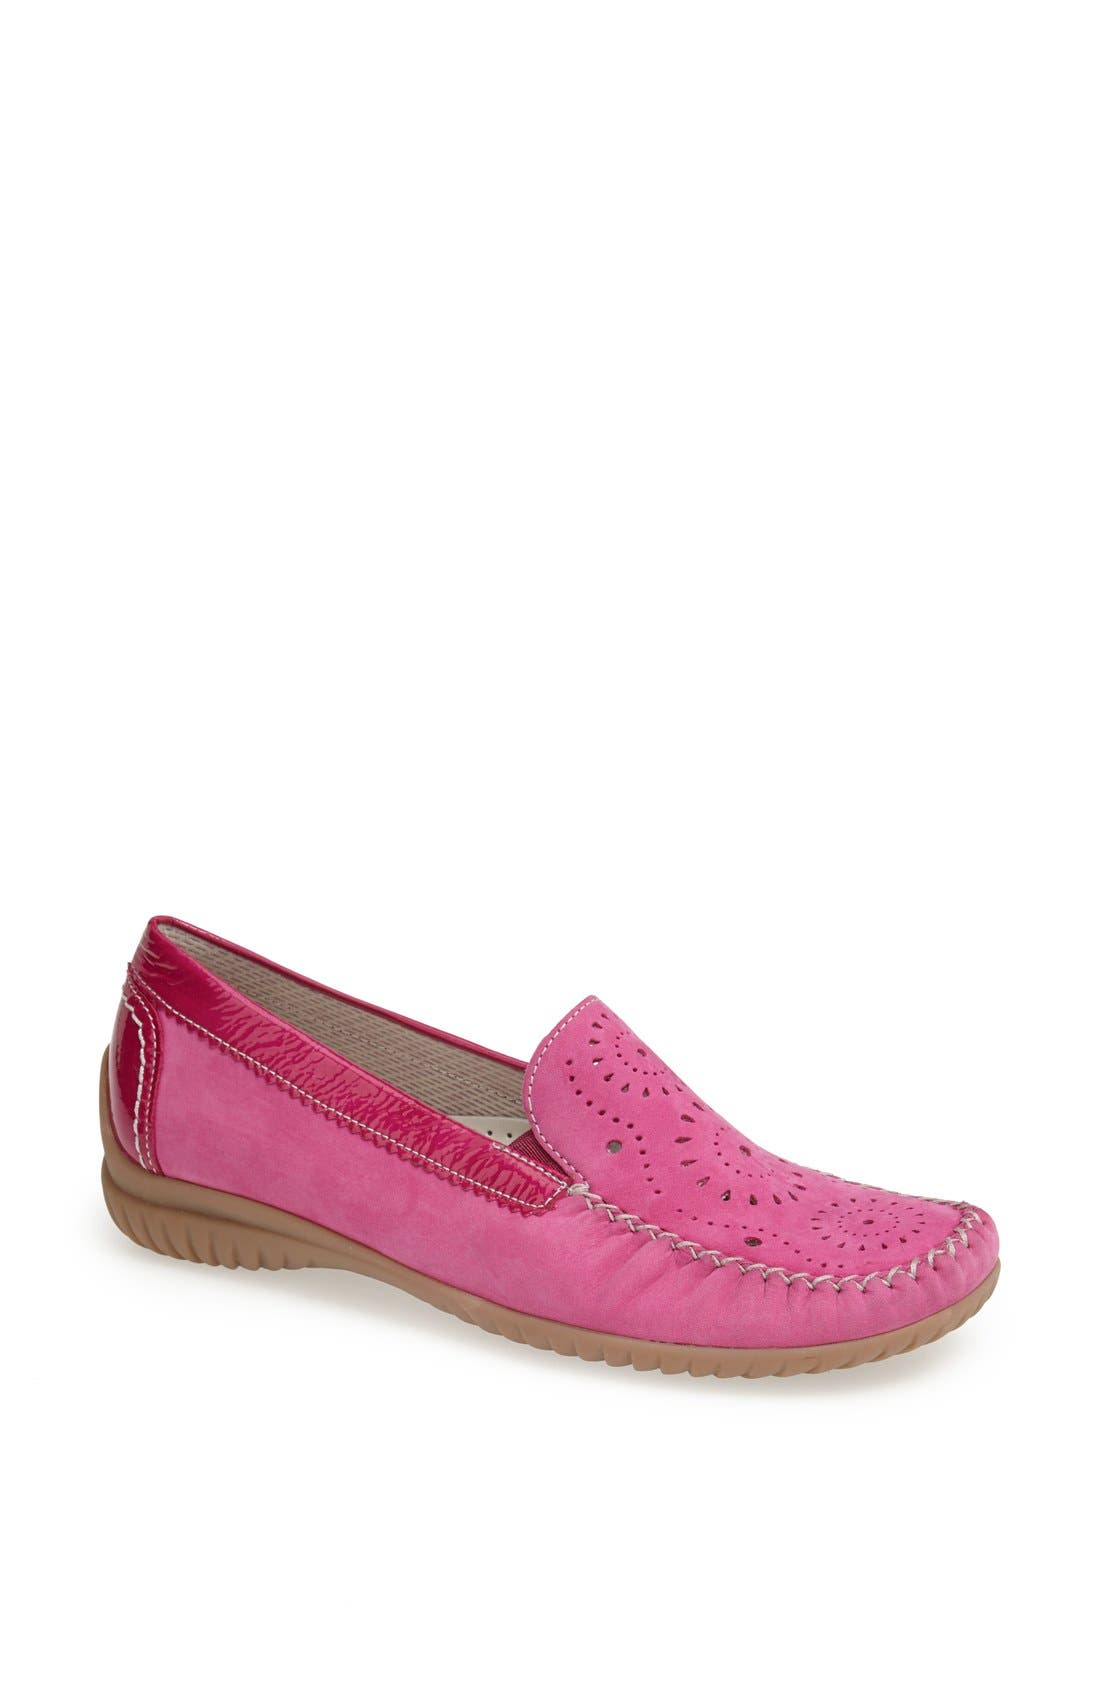 Main Image - Gabor Perforated Leather Flat